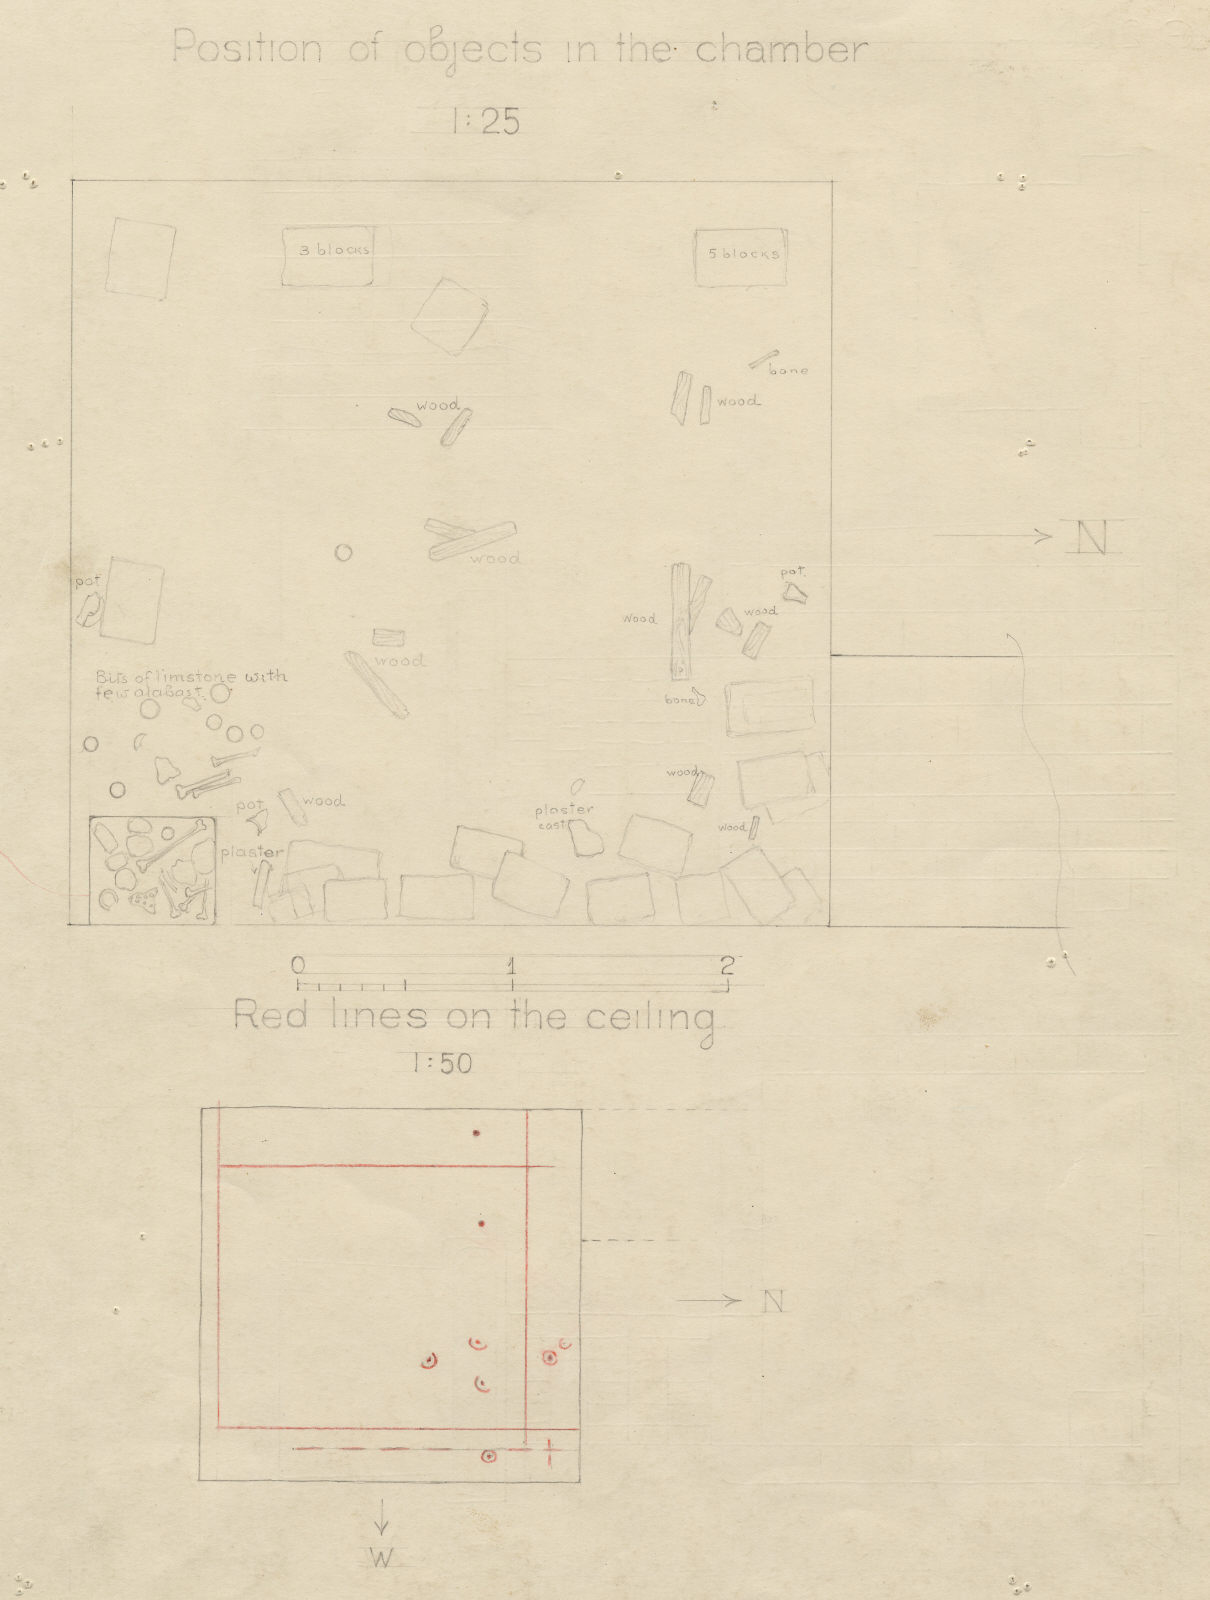 Maps and plans: G 2100, shaft A, Plan of burial chamber